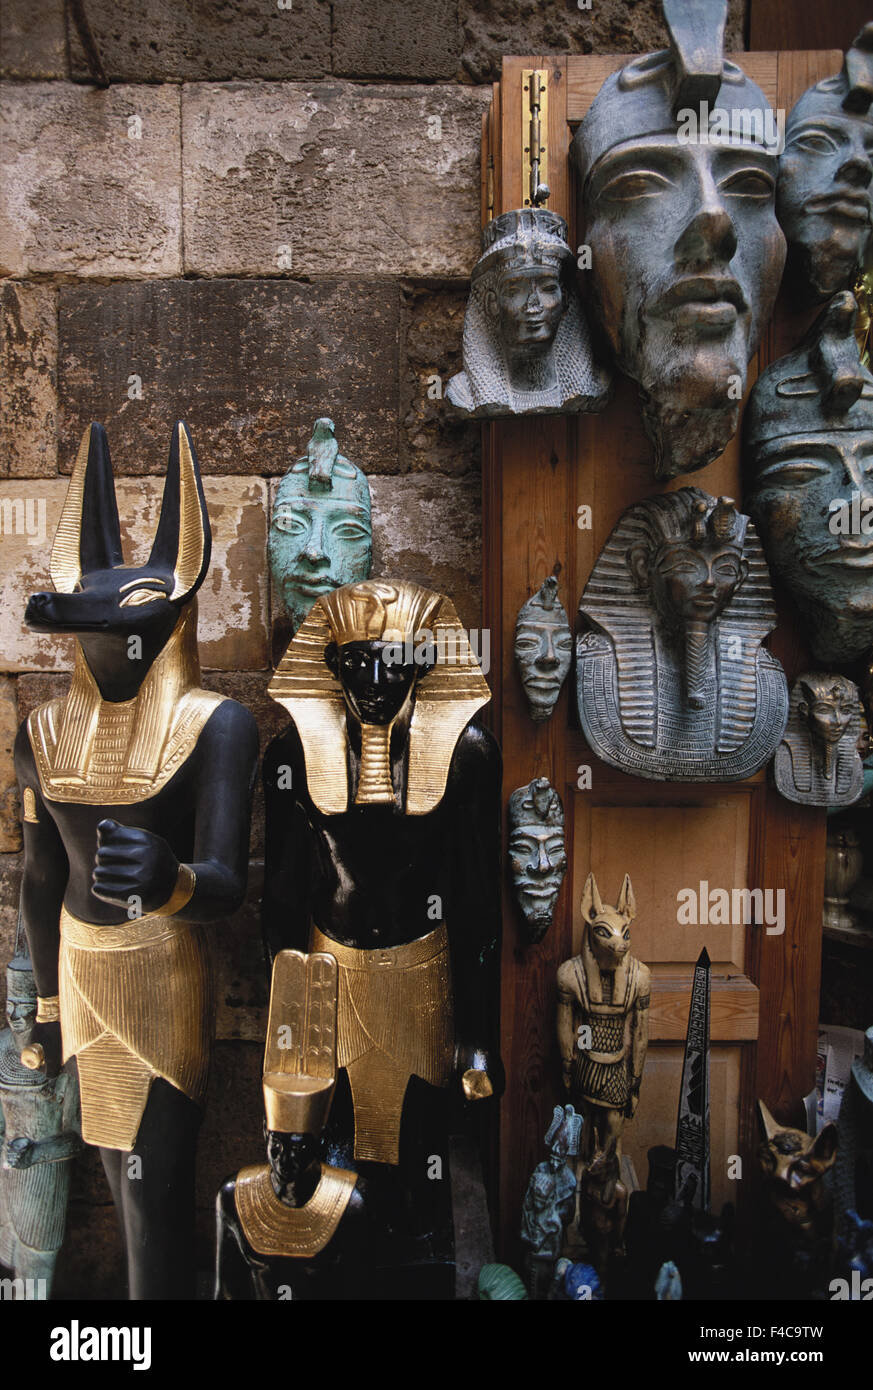 Egypt, Cairo, Statue and death mask in market. (Large format sizes available) - Stock Image